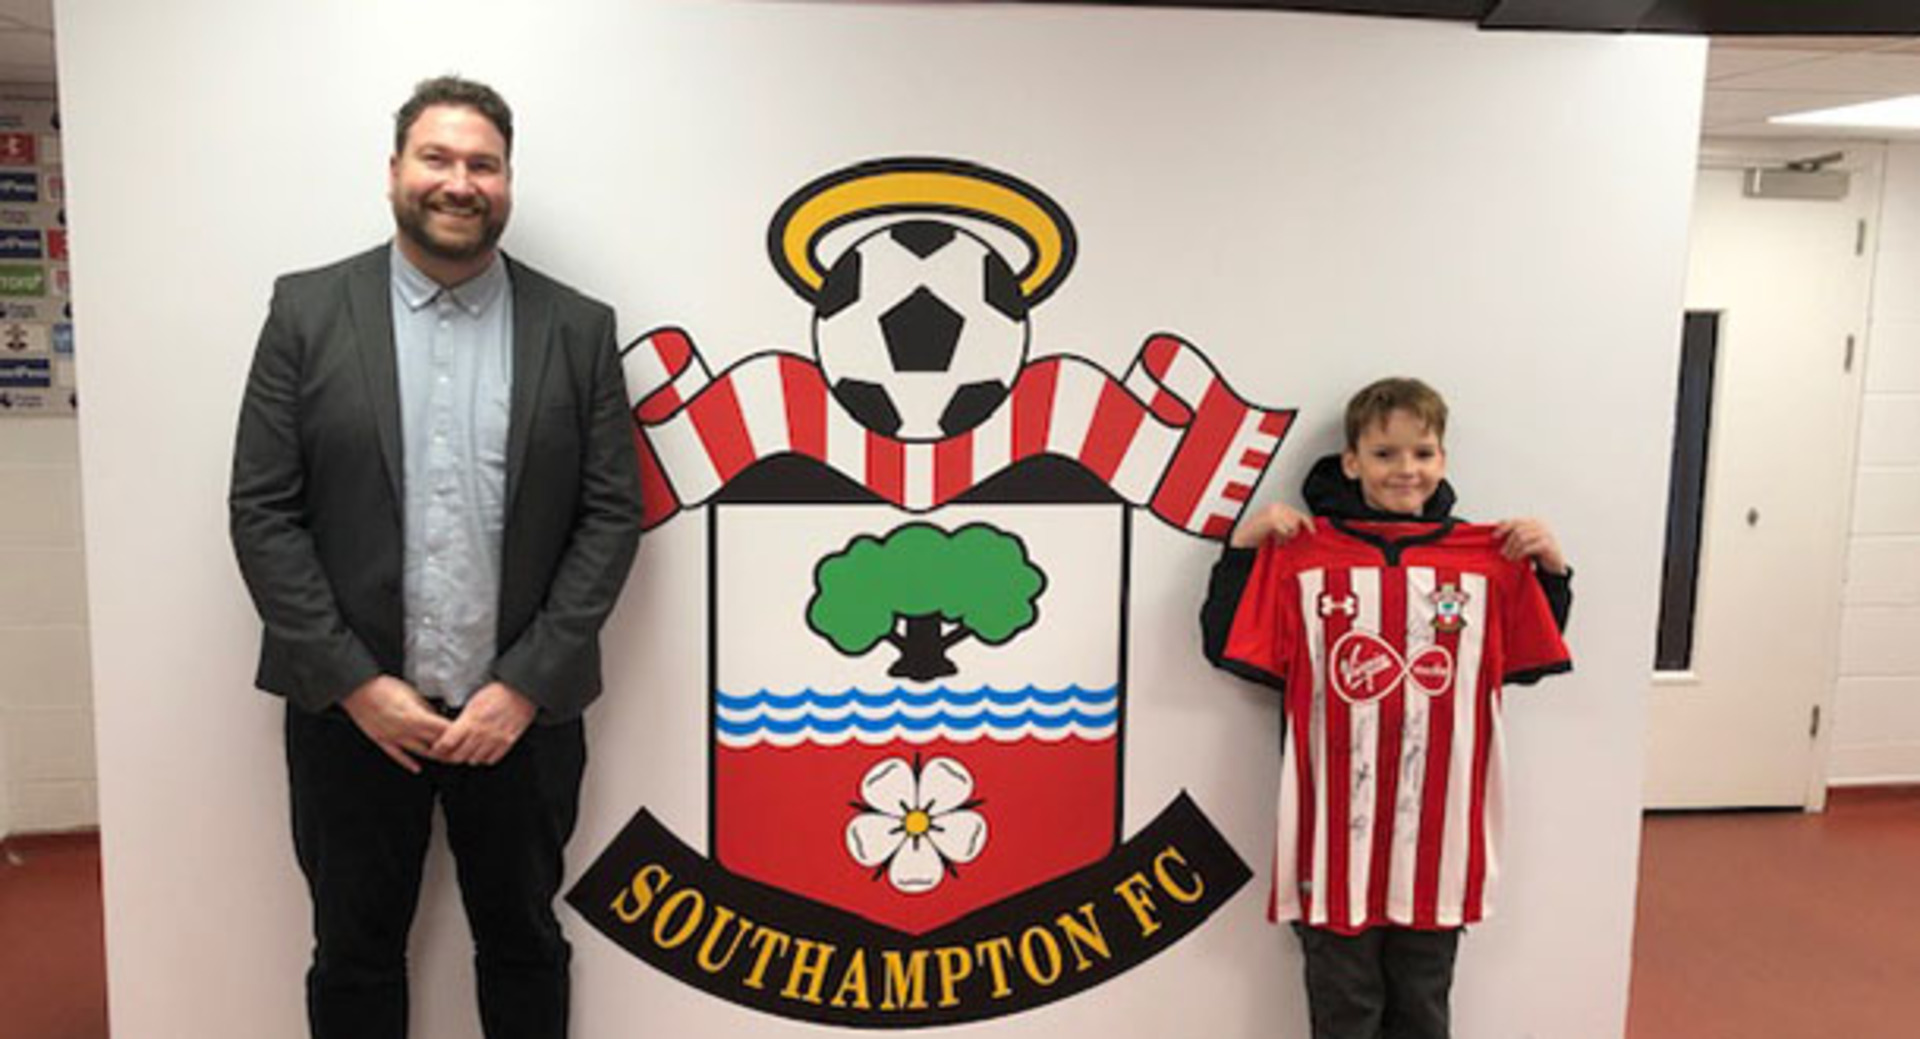 Southampton Business EXPO visitor wins signed Saints shirt and Southampton Football Club tour